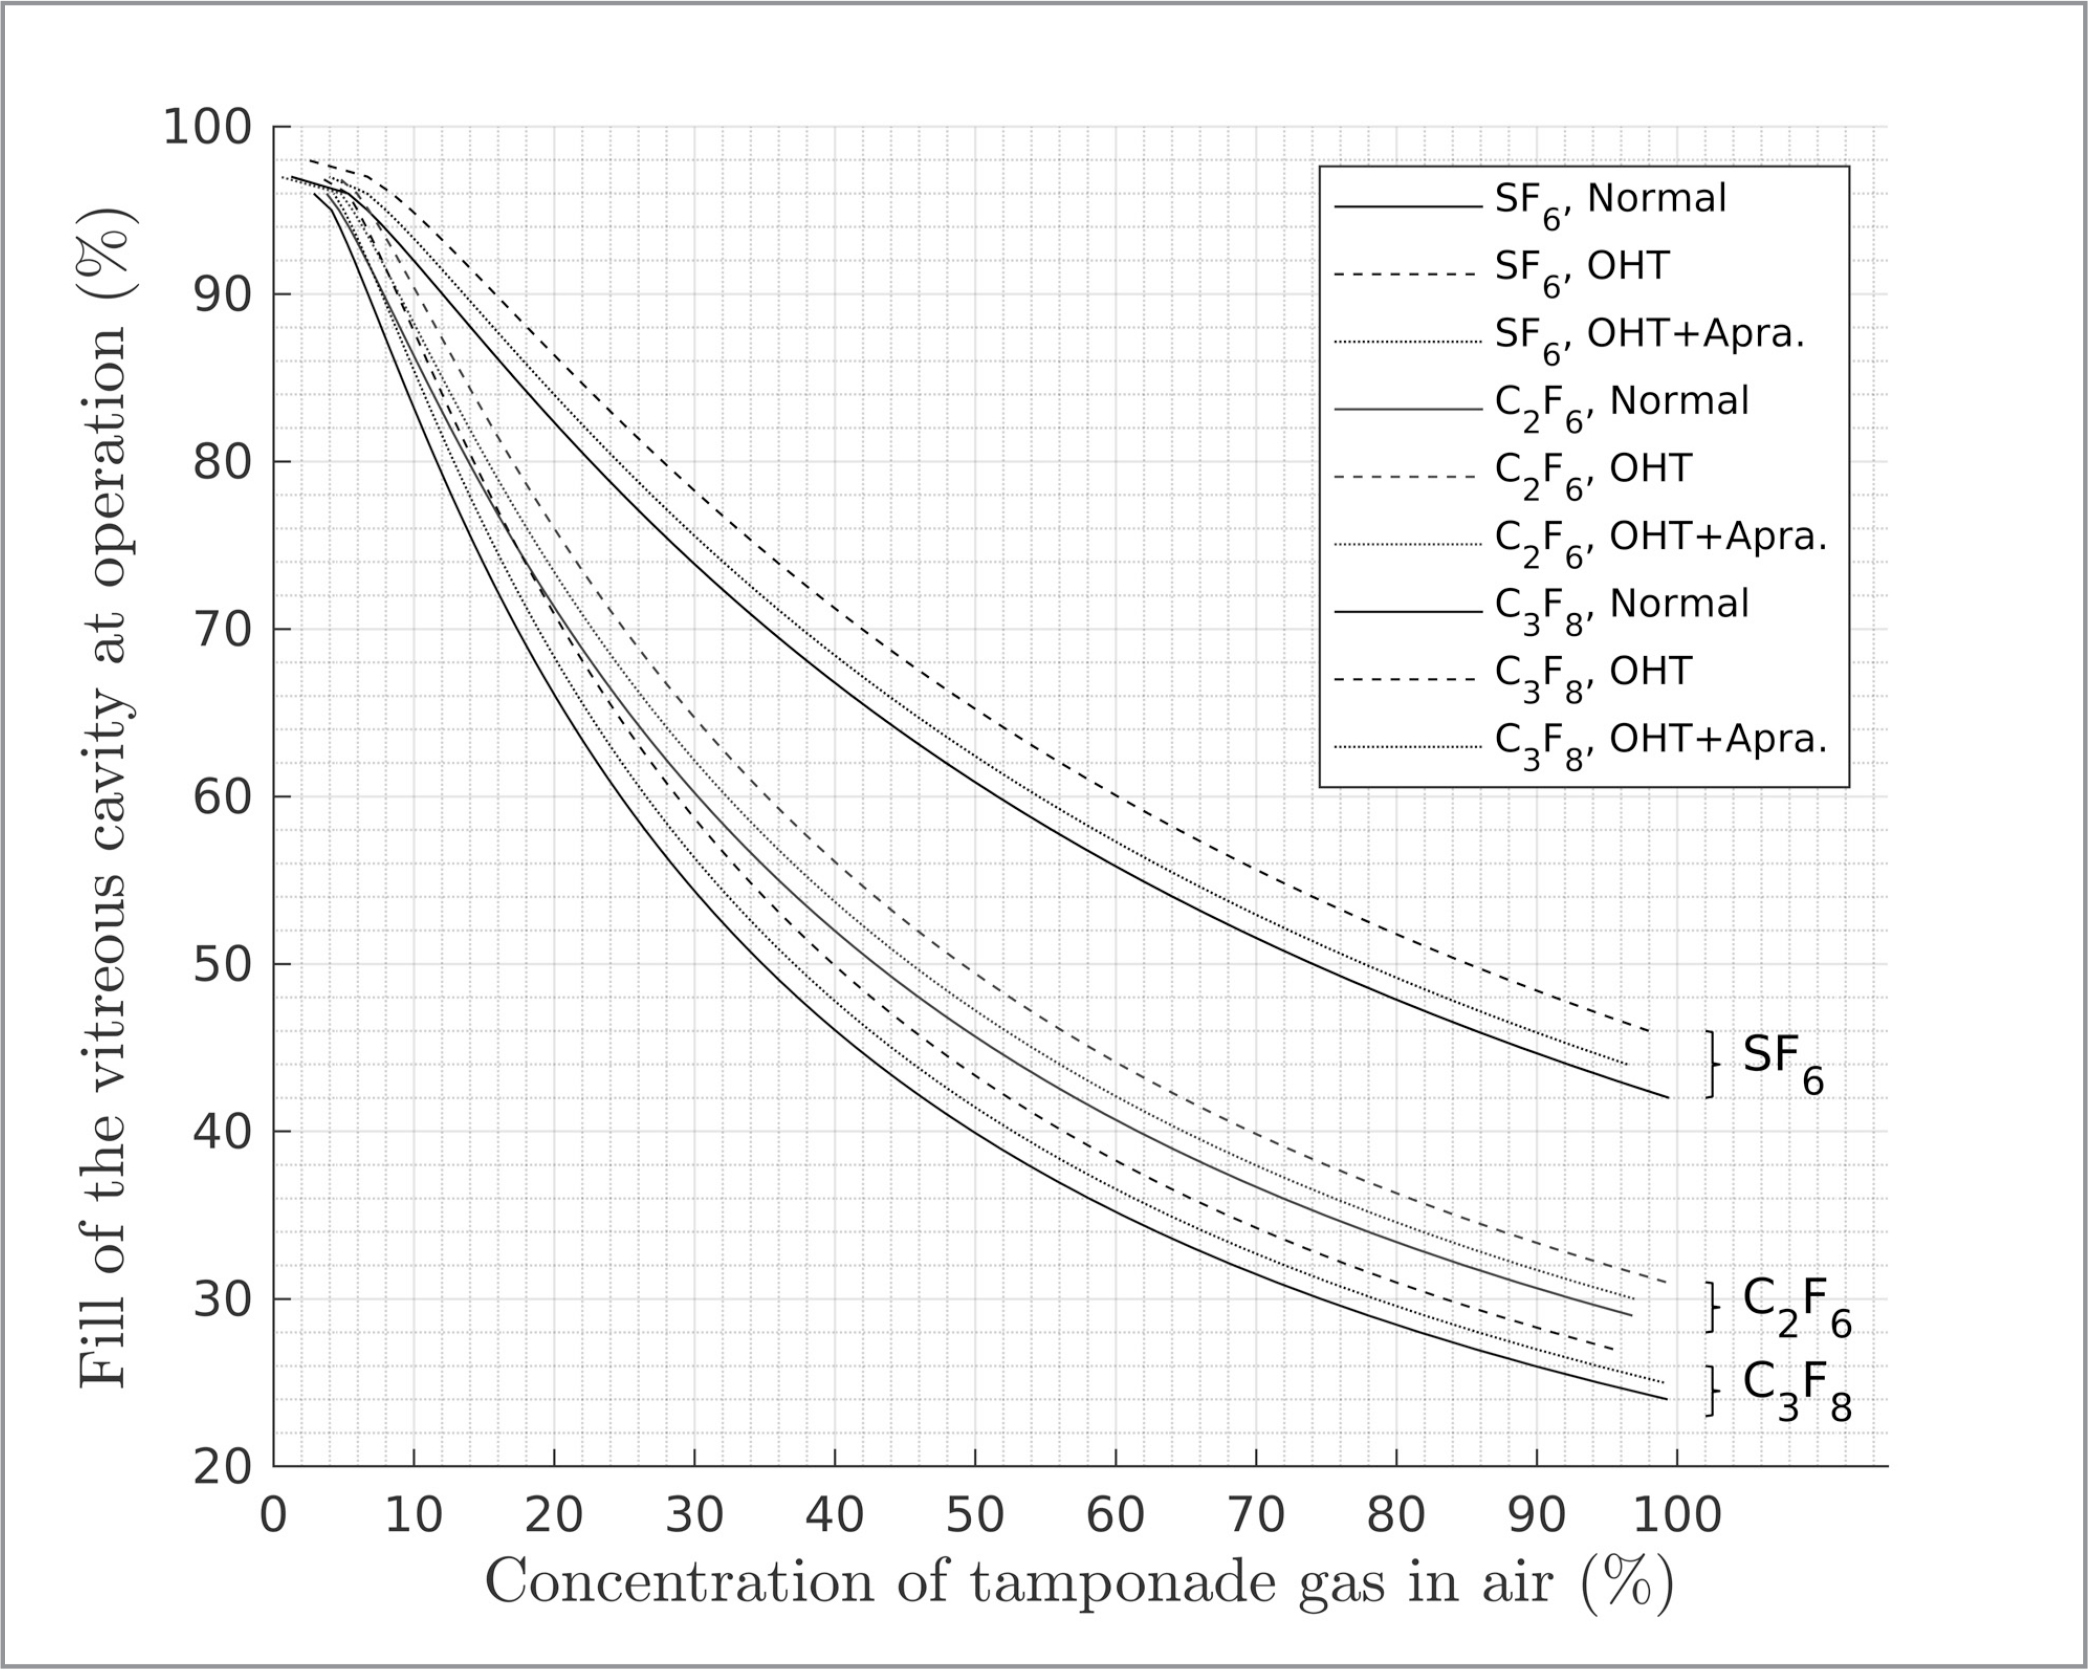 The effects of ocular hypertension (OHT) and apraclonidine treatment on concentration of gas required to achieve 100% fill postoperatively. The gas concentration required varies depending on aqueous dynamics. Eyes with normal aqueous outflow require lower gas concentrations than those with reduced outflow states, such as OHT, to achieve maximal fill.